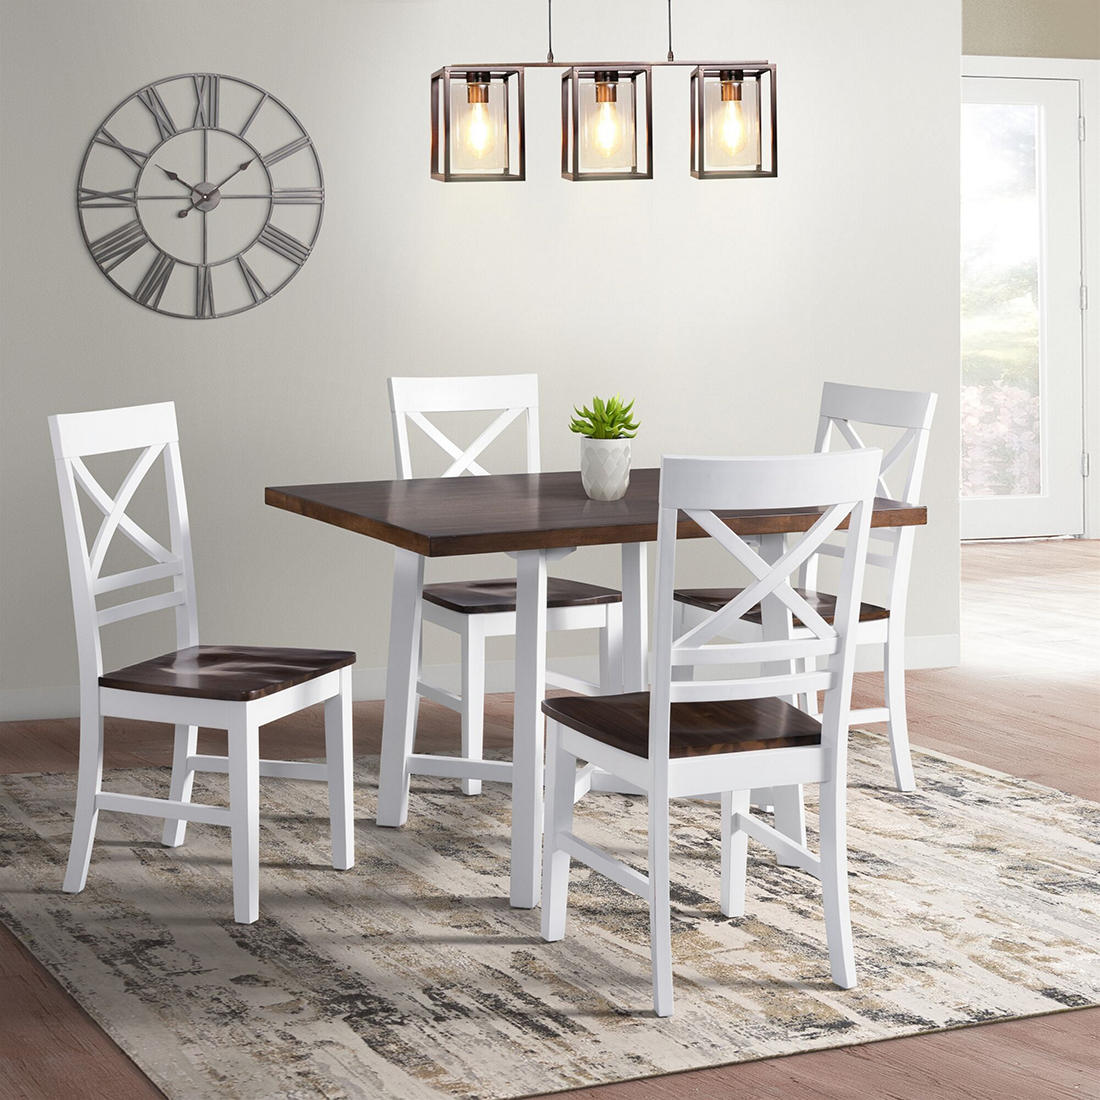 Wondrous Elements El Paso 5 Pc Dining Set Ocoug Best Dining Table And Chair Ideas Images Ocougorg